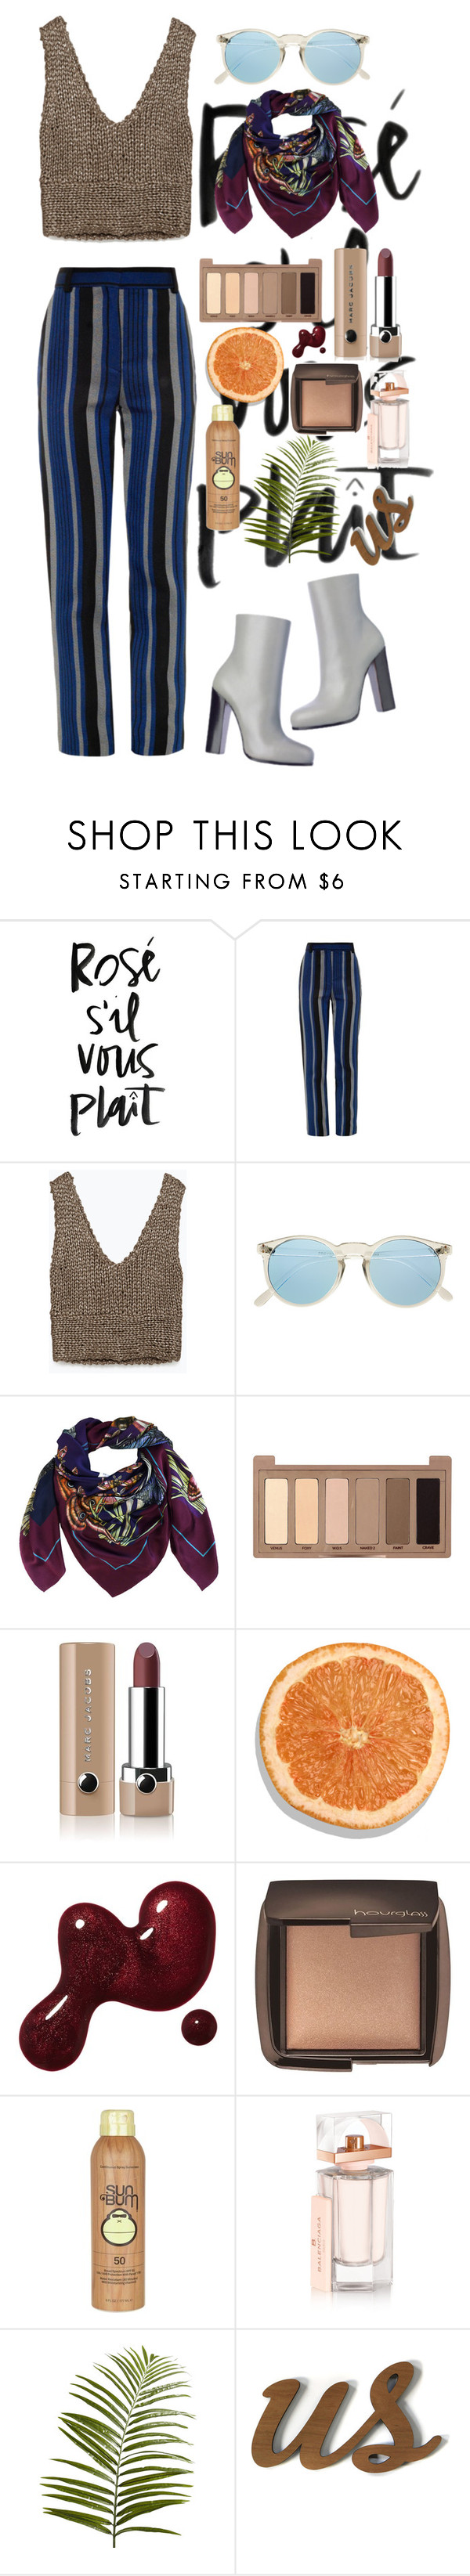 """Rosè s'il vous plâit"" by hannia-larino ❤ liked on Polyvore featuring Proenza Schouler, Zara, Heron Design Studio, Urban Decay, Marc Jacobs, Hourglass Cosmetics, Sun Bum, Balenciaga and Pier 1 Imports"